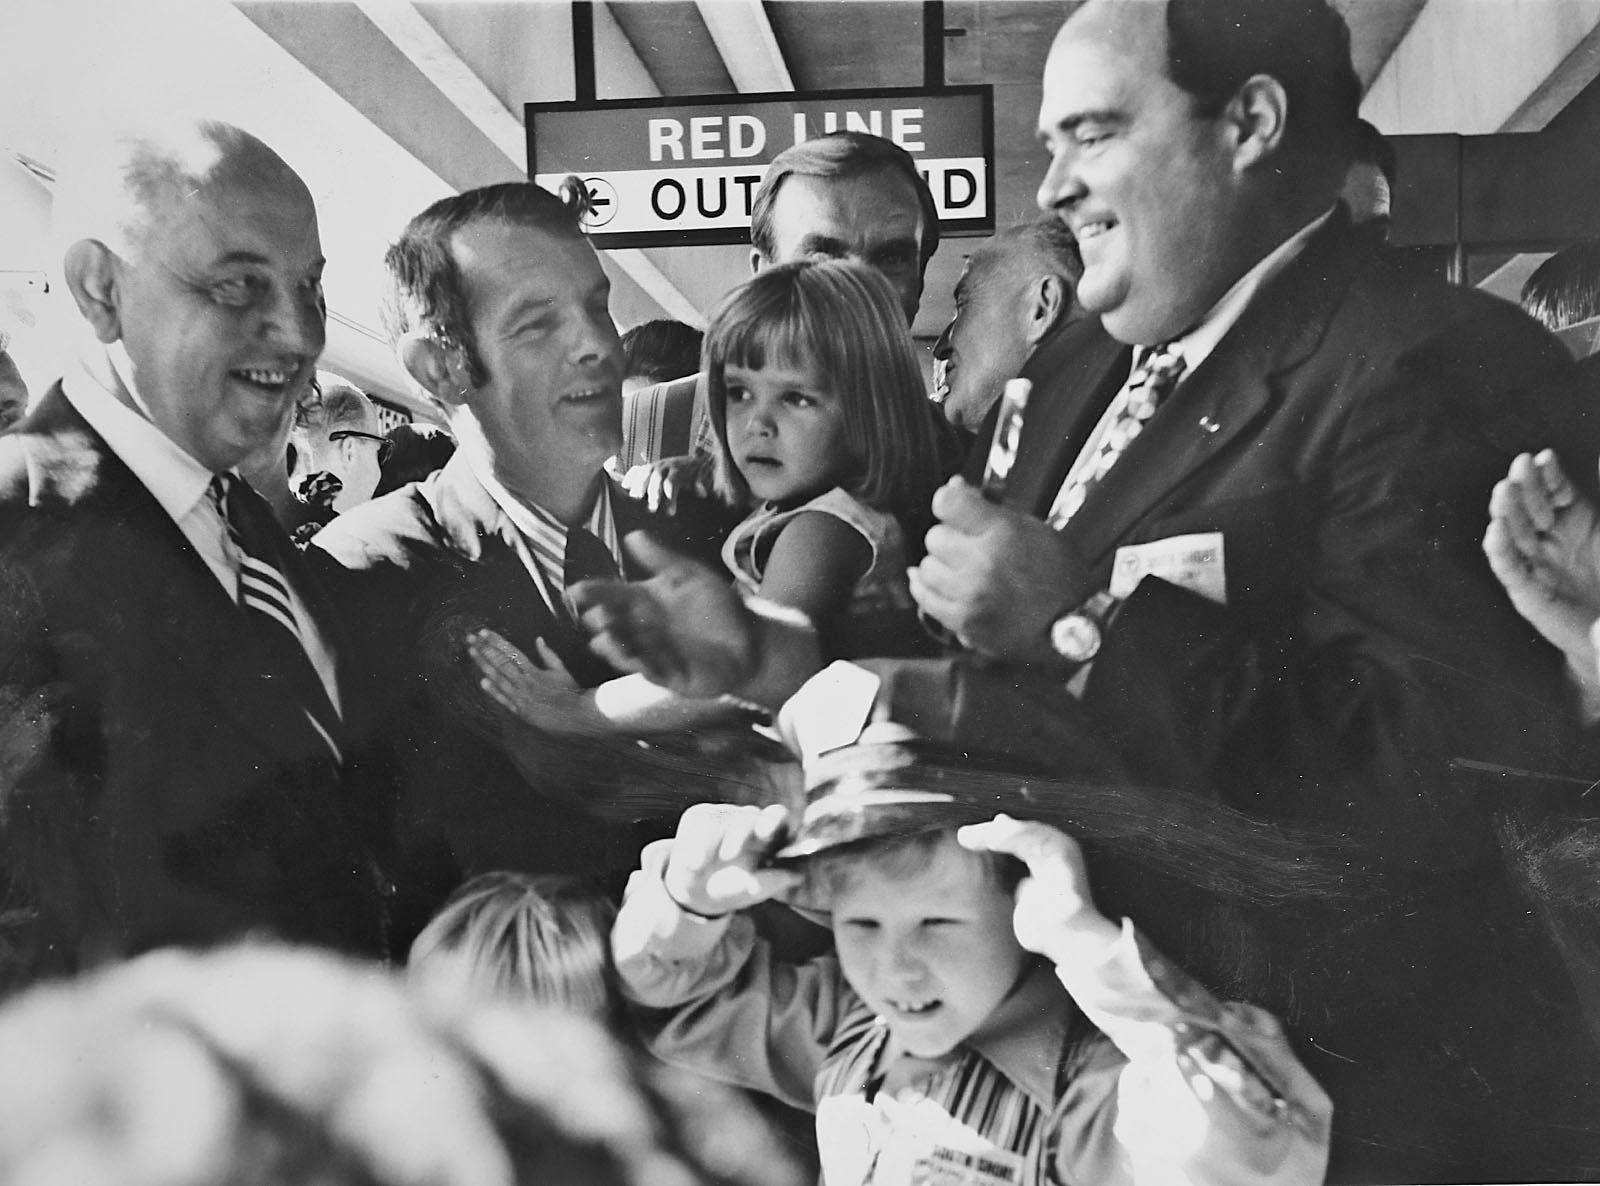 A photograph of the opening day of the Red Line in Quincy in 1971 from the Quincy Historical Society collection.